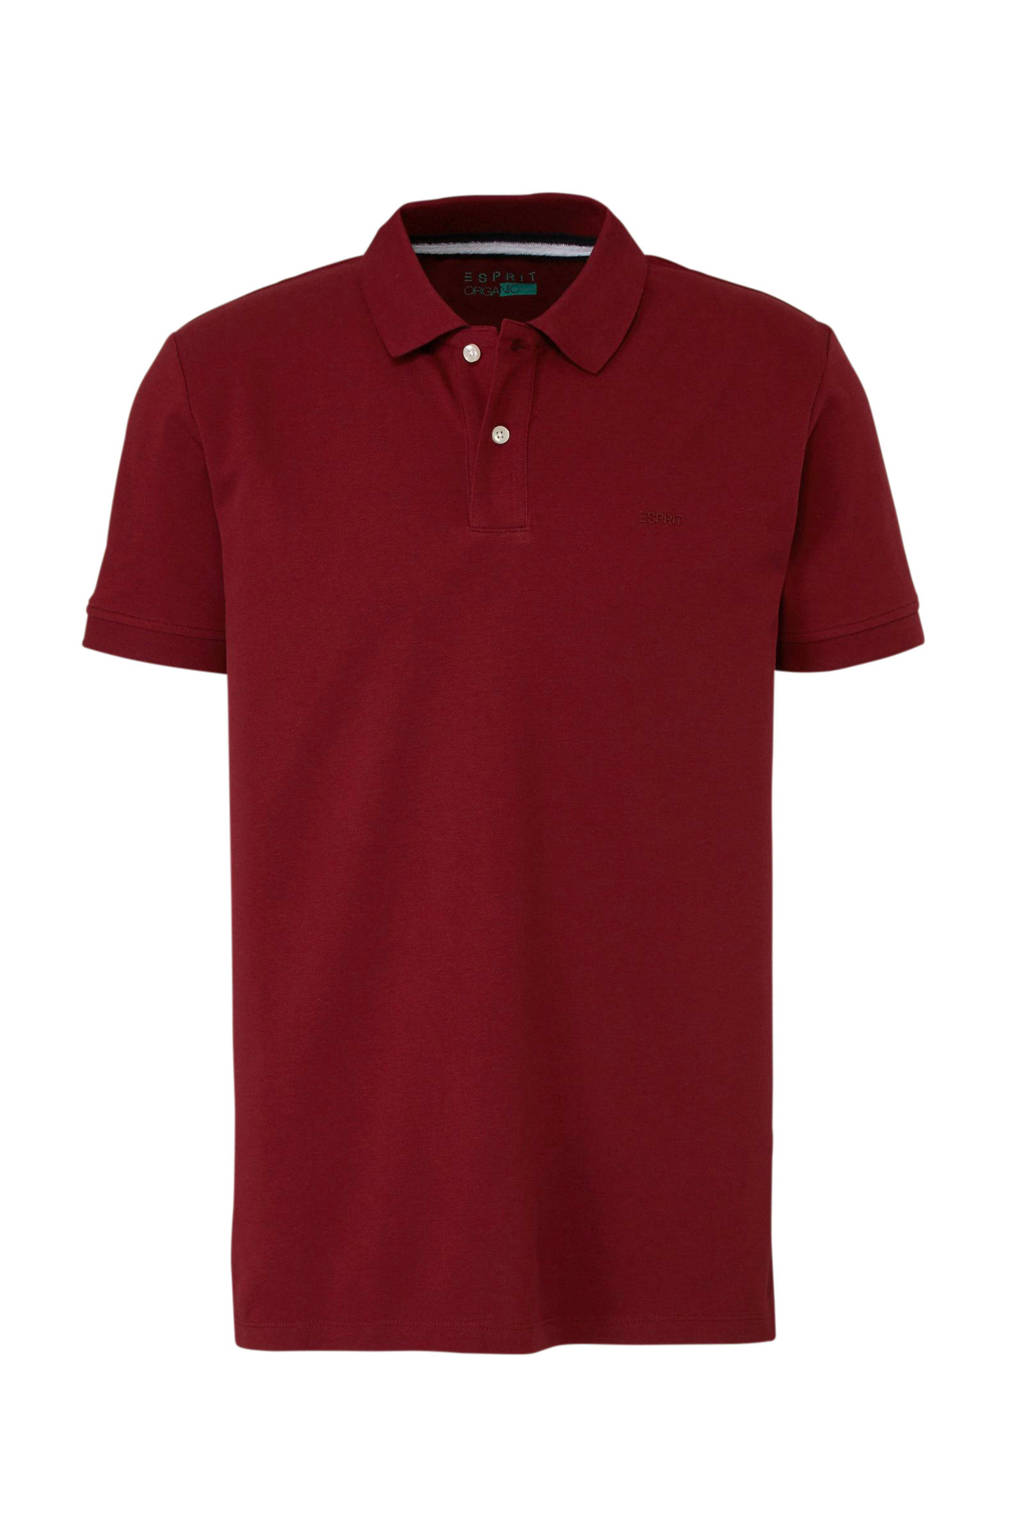 ESPRIT Men Casual polo, Donkerrood